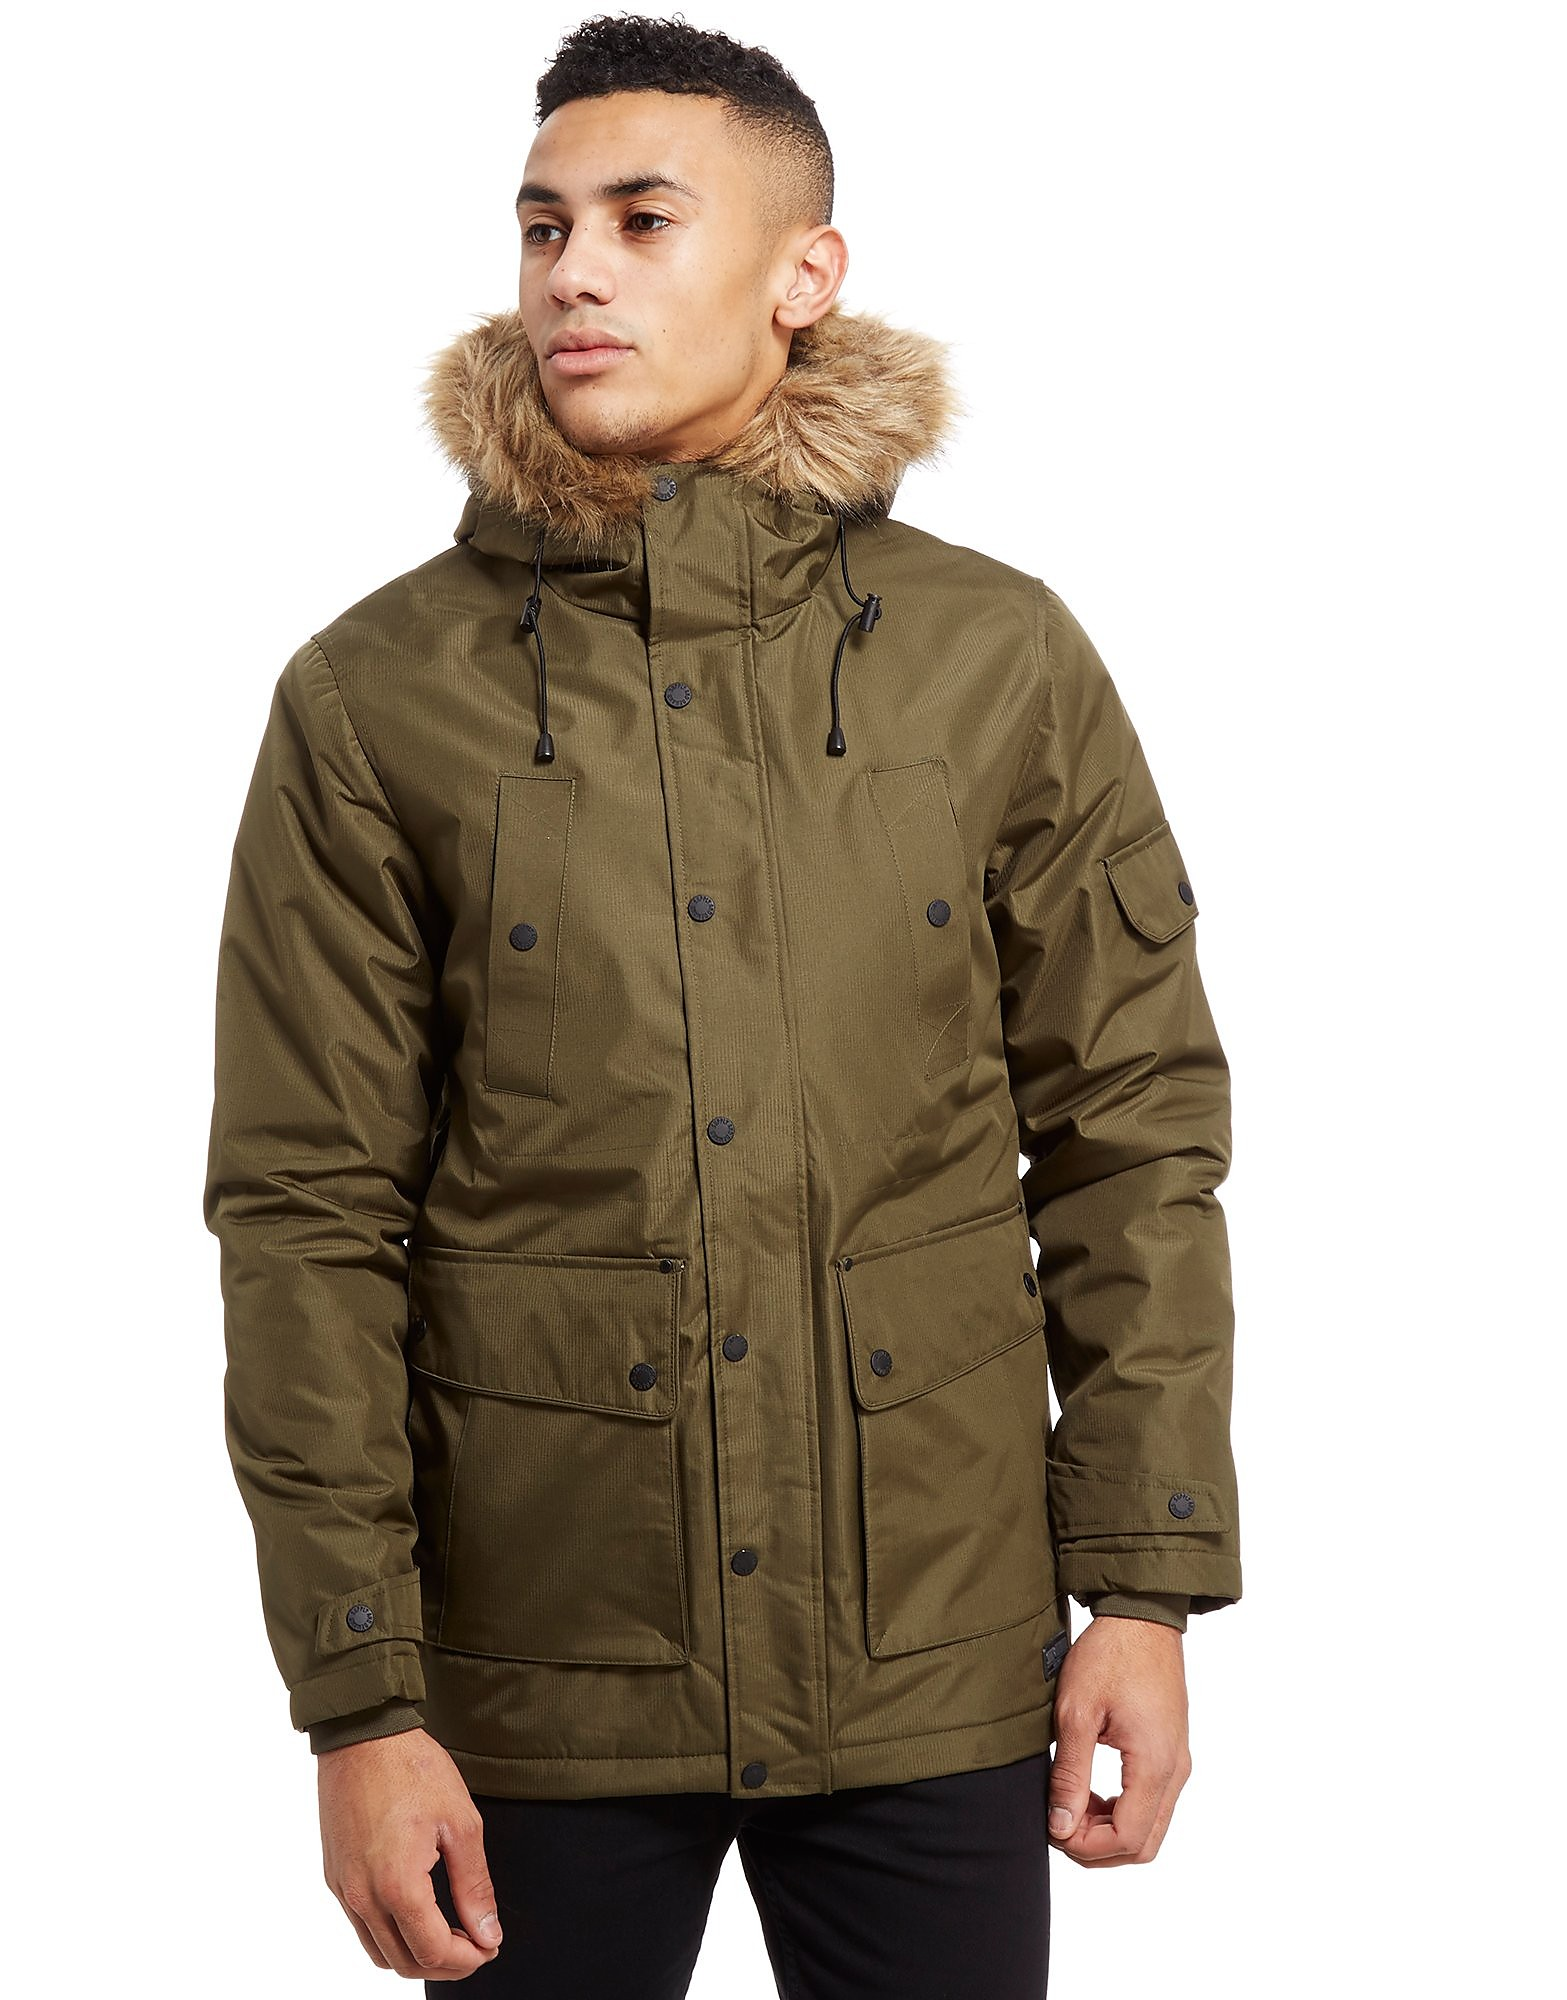 Supply & Demand Zeus Parka Jacket - Only at JD, Khaki